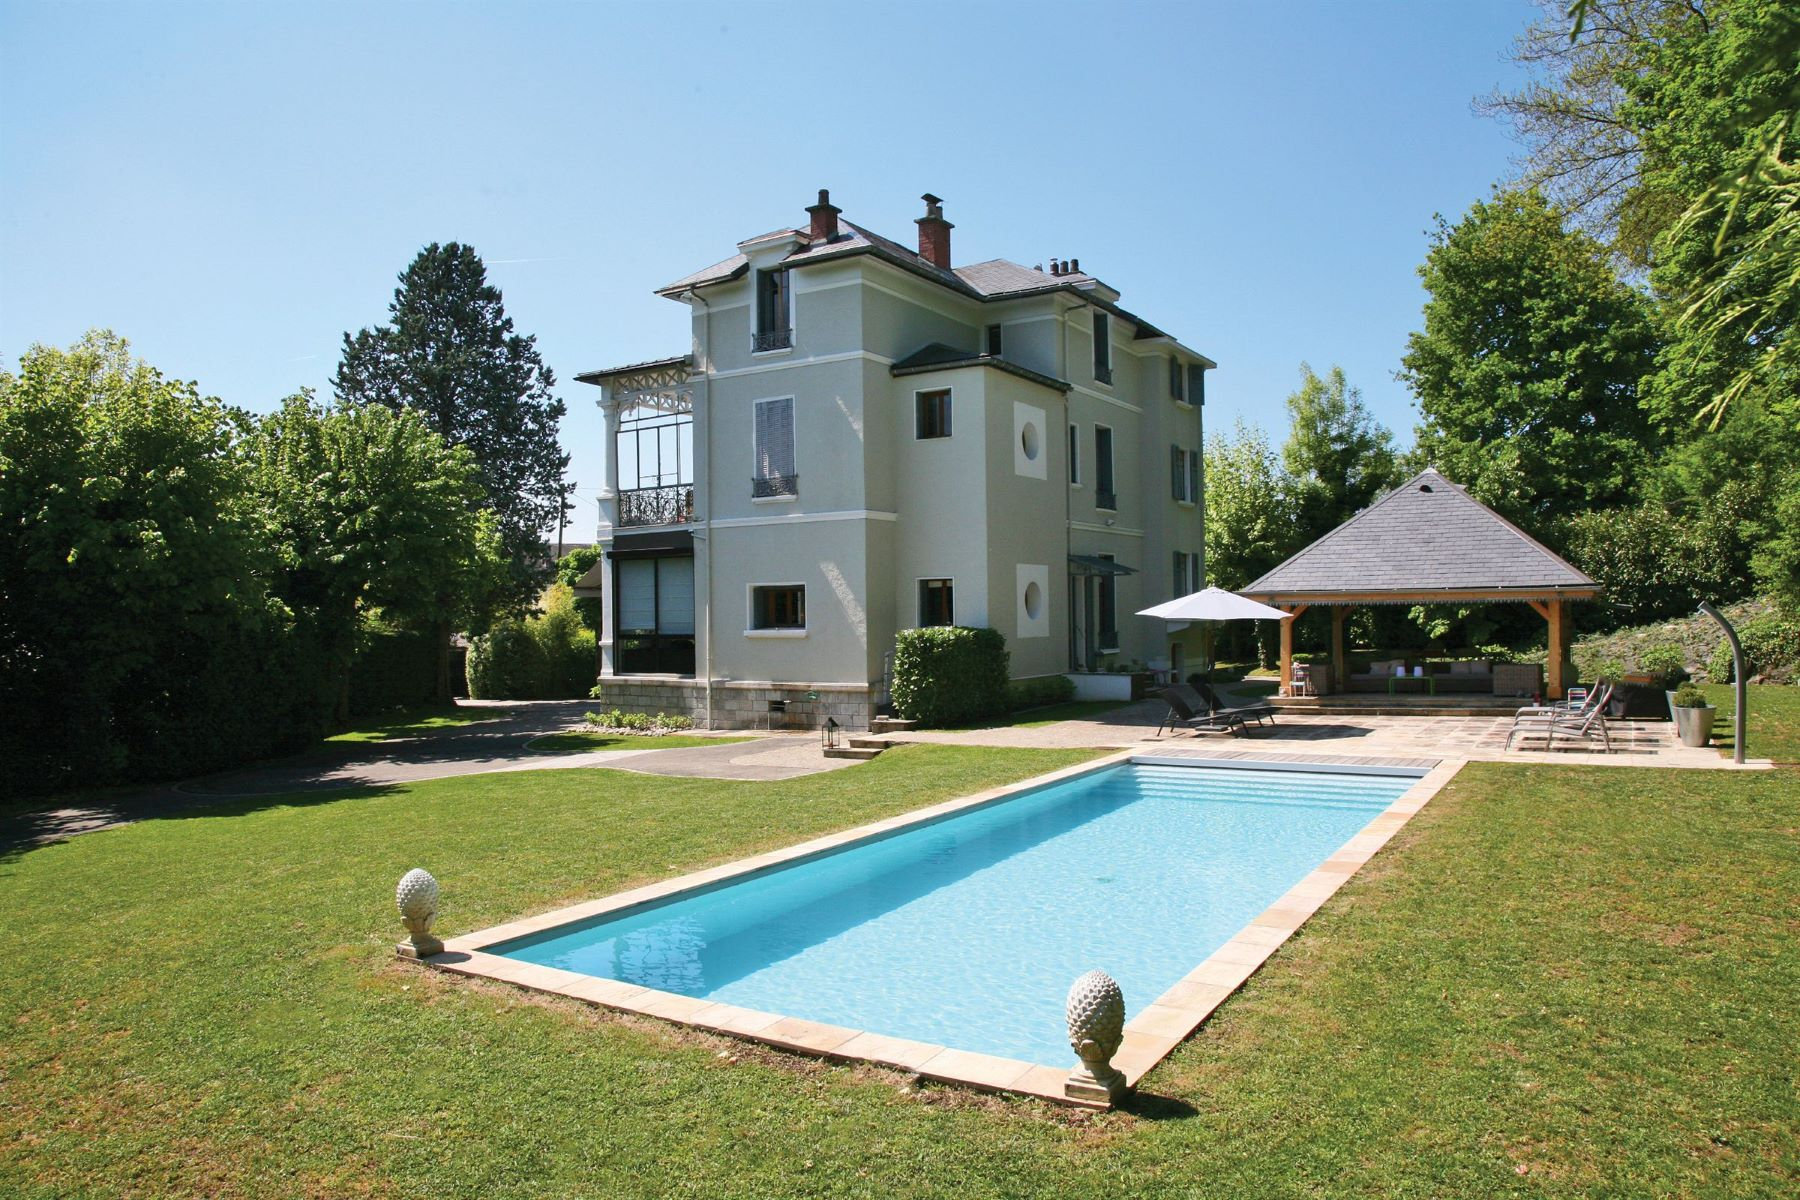 Single Family Home for Sale at Elegant property of the beautiful era. Aix Les Bains, Rhone-Alpes, 73100 France